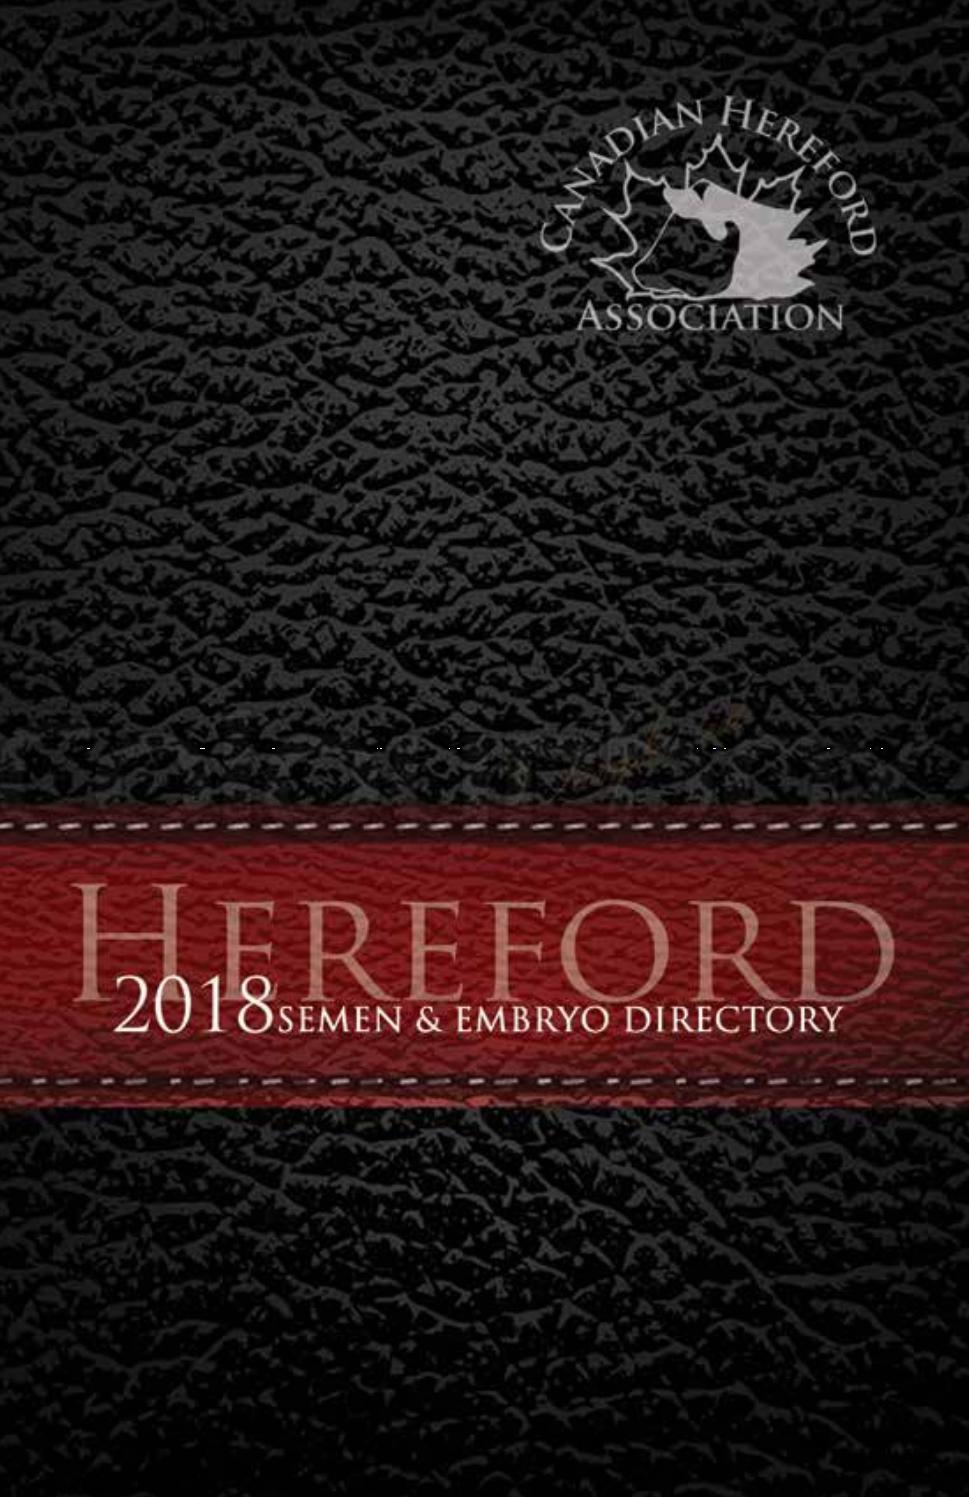 2018 Semen & Embryo Directory by Canadian Hereford